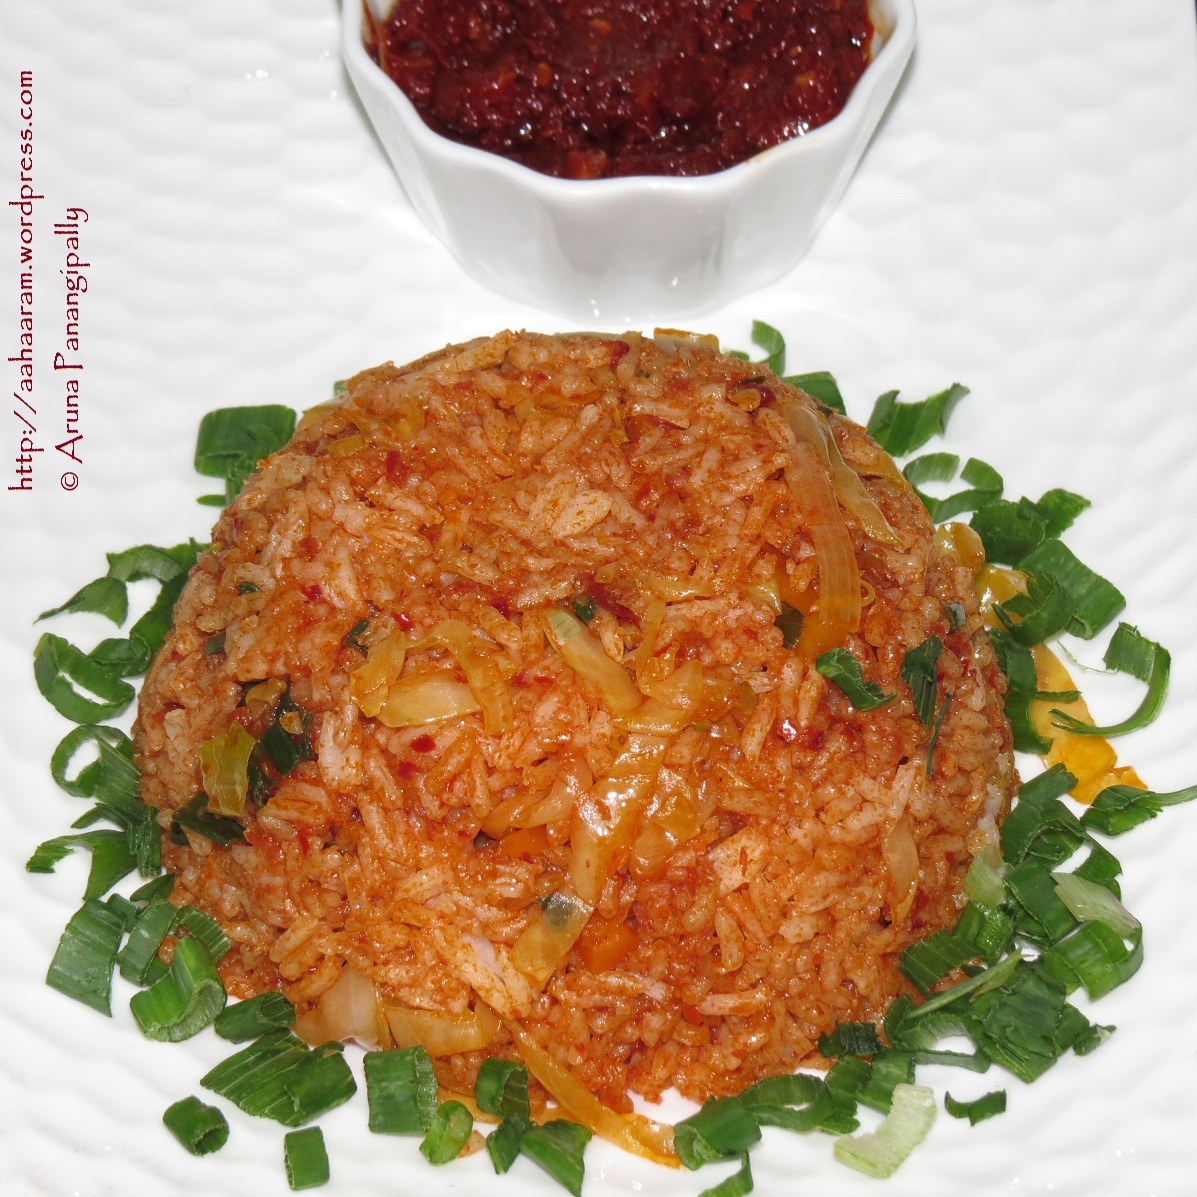 Schezwan Fried Rice or Sichuan Fried Rice | ãhãram